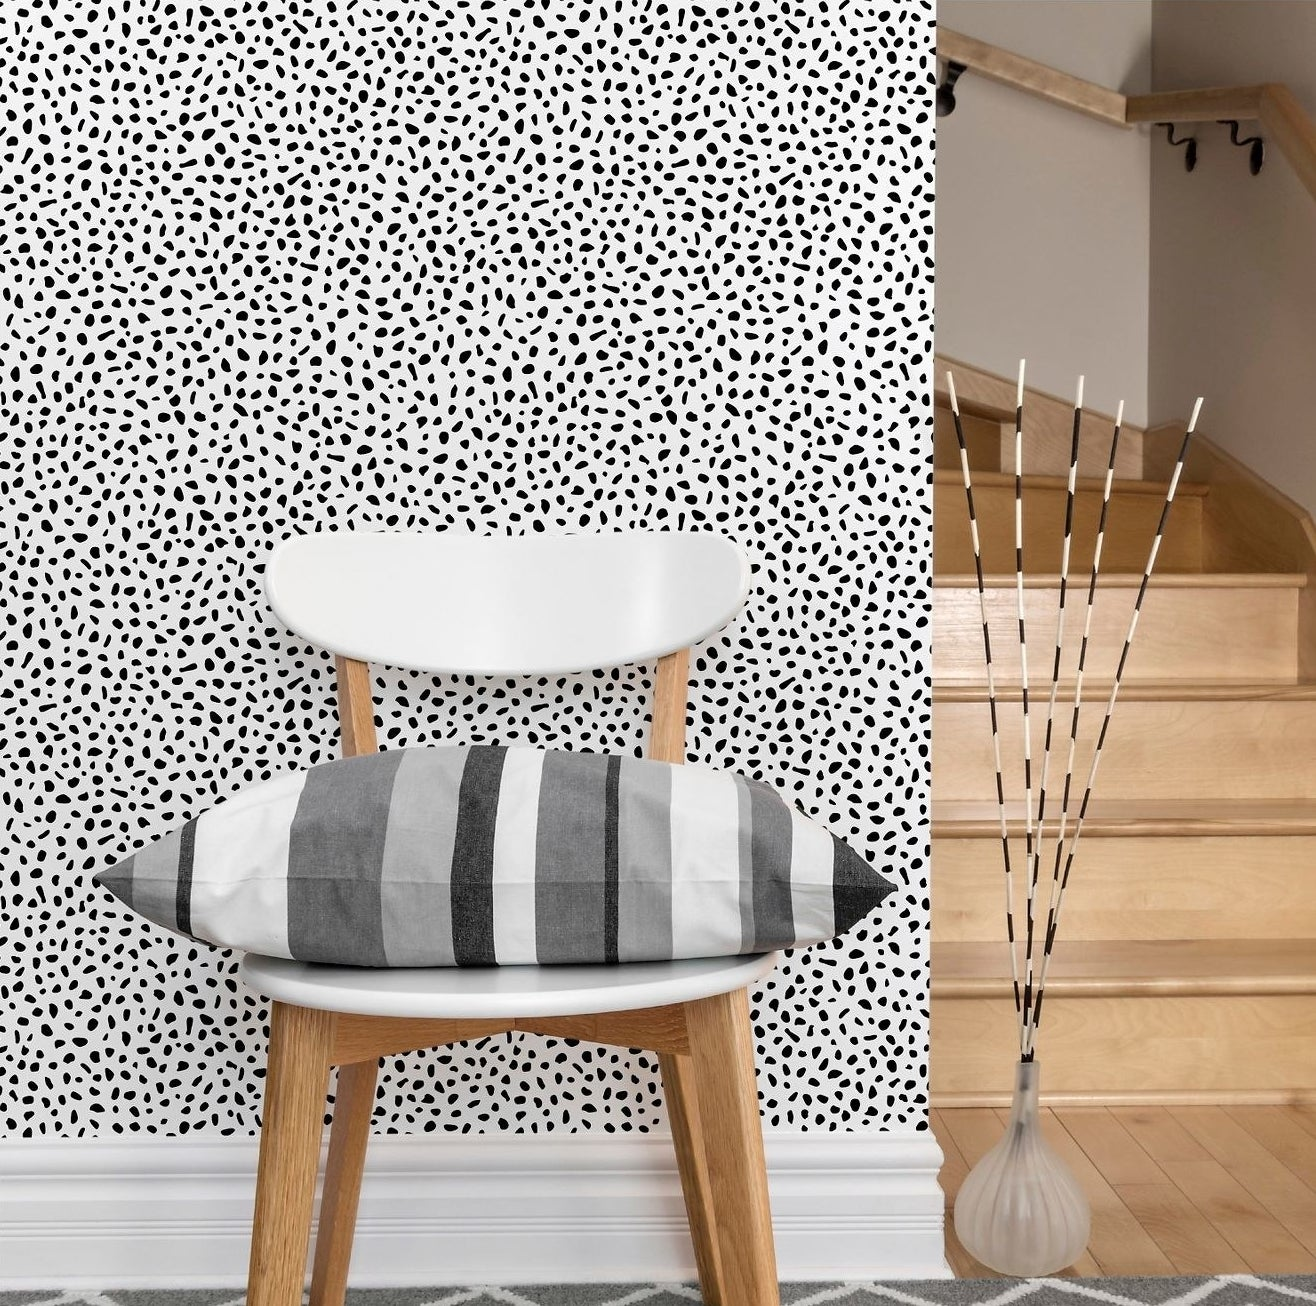 A black and white speckled pattern wallpaper